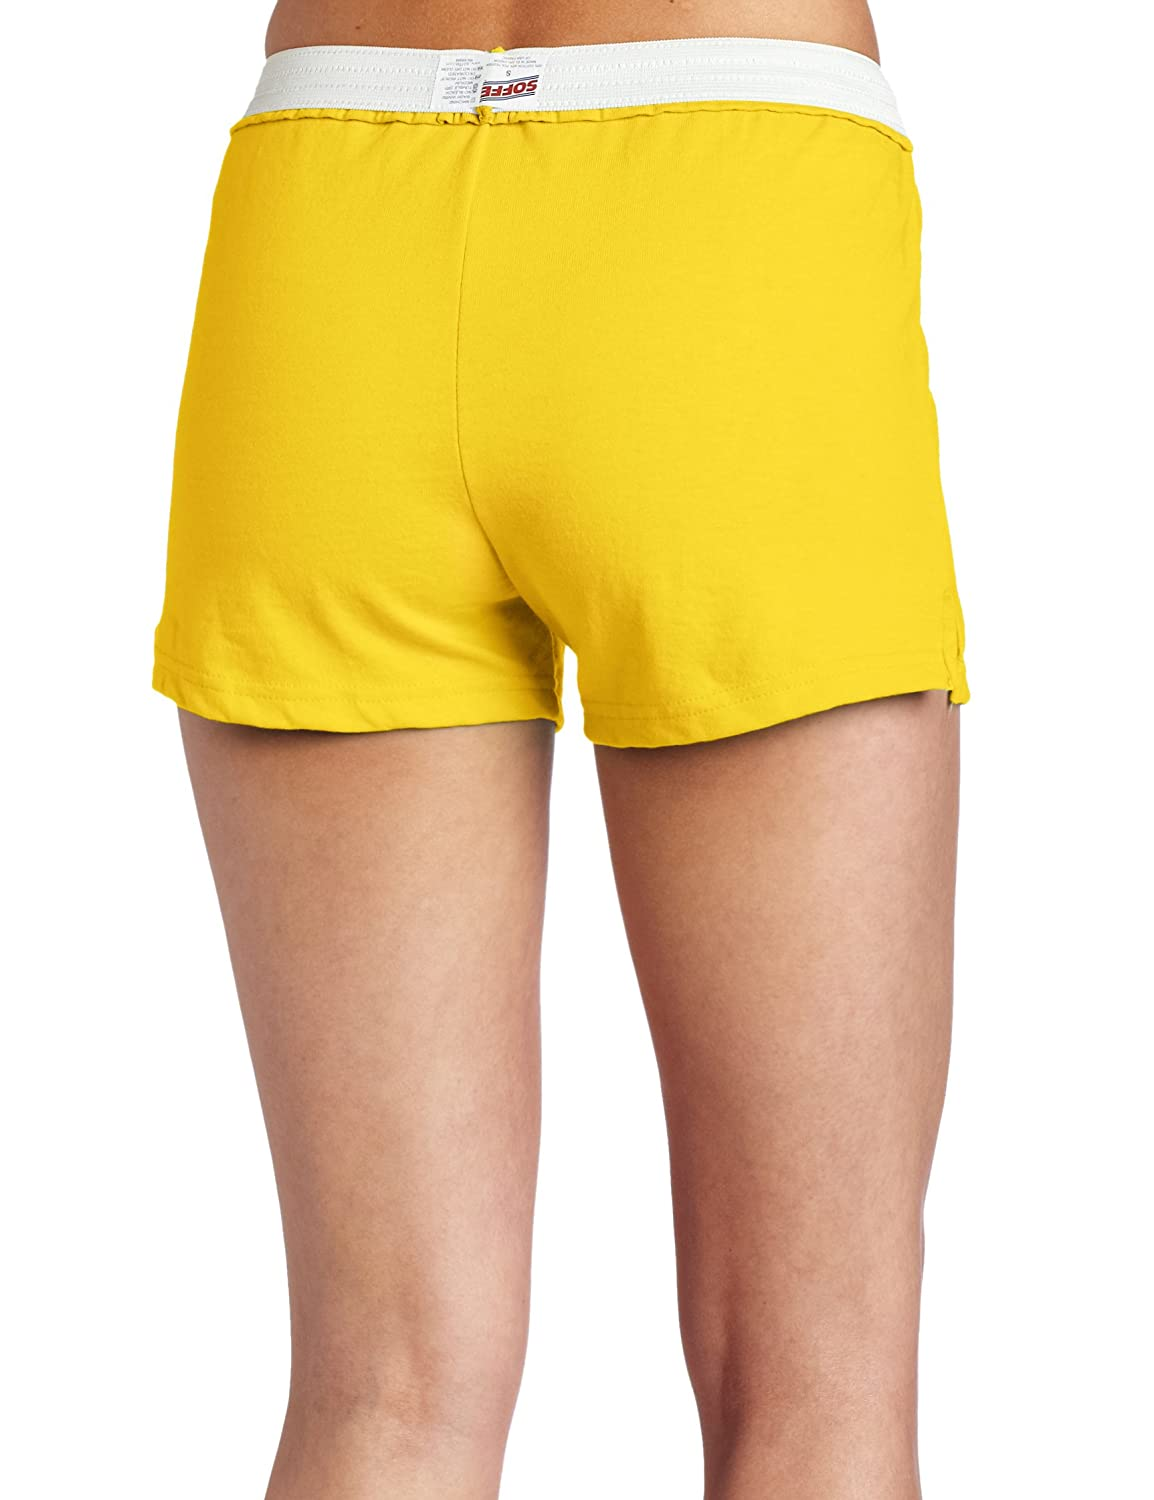 Soffe Athletic Youth Cheer Shorts Eric McCrite Company M037100-2XL-P